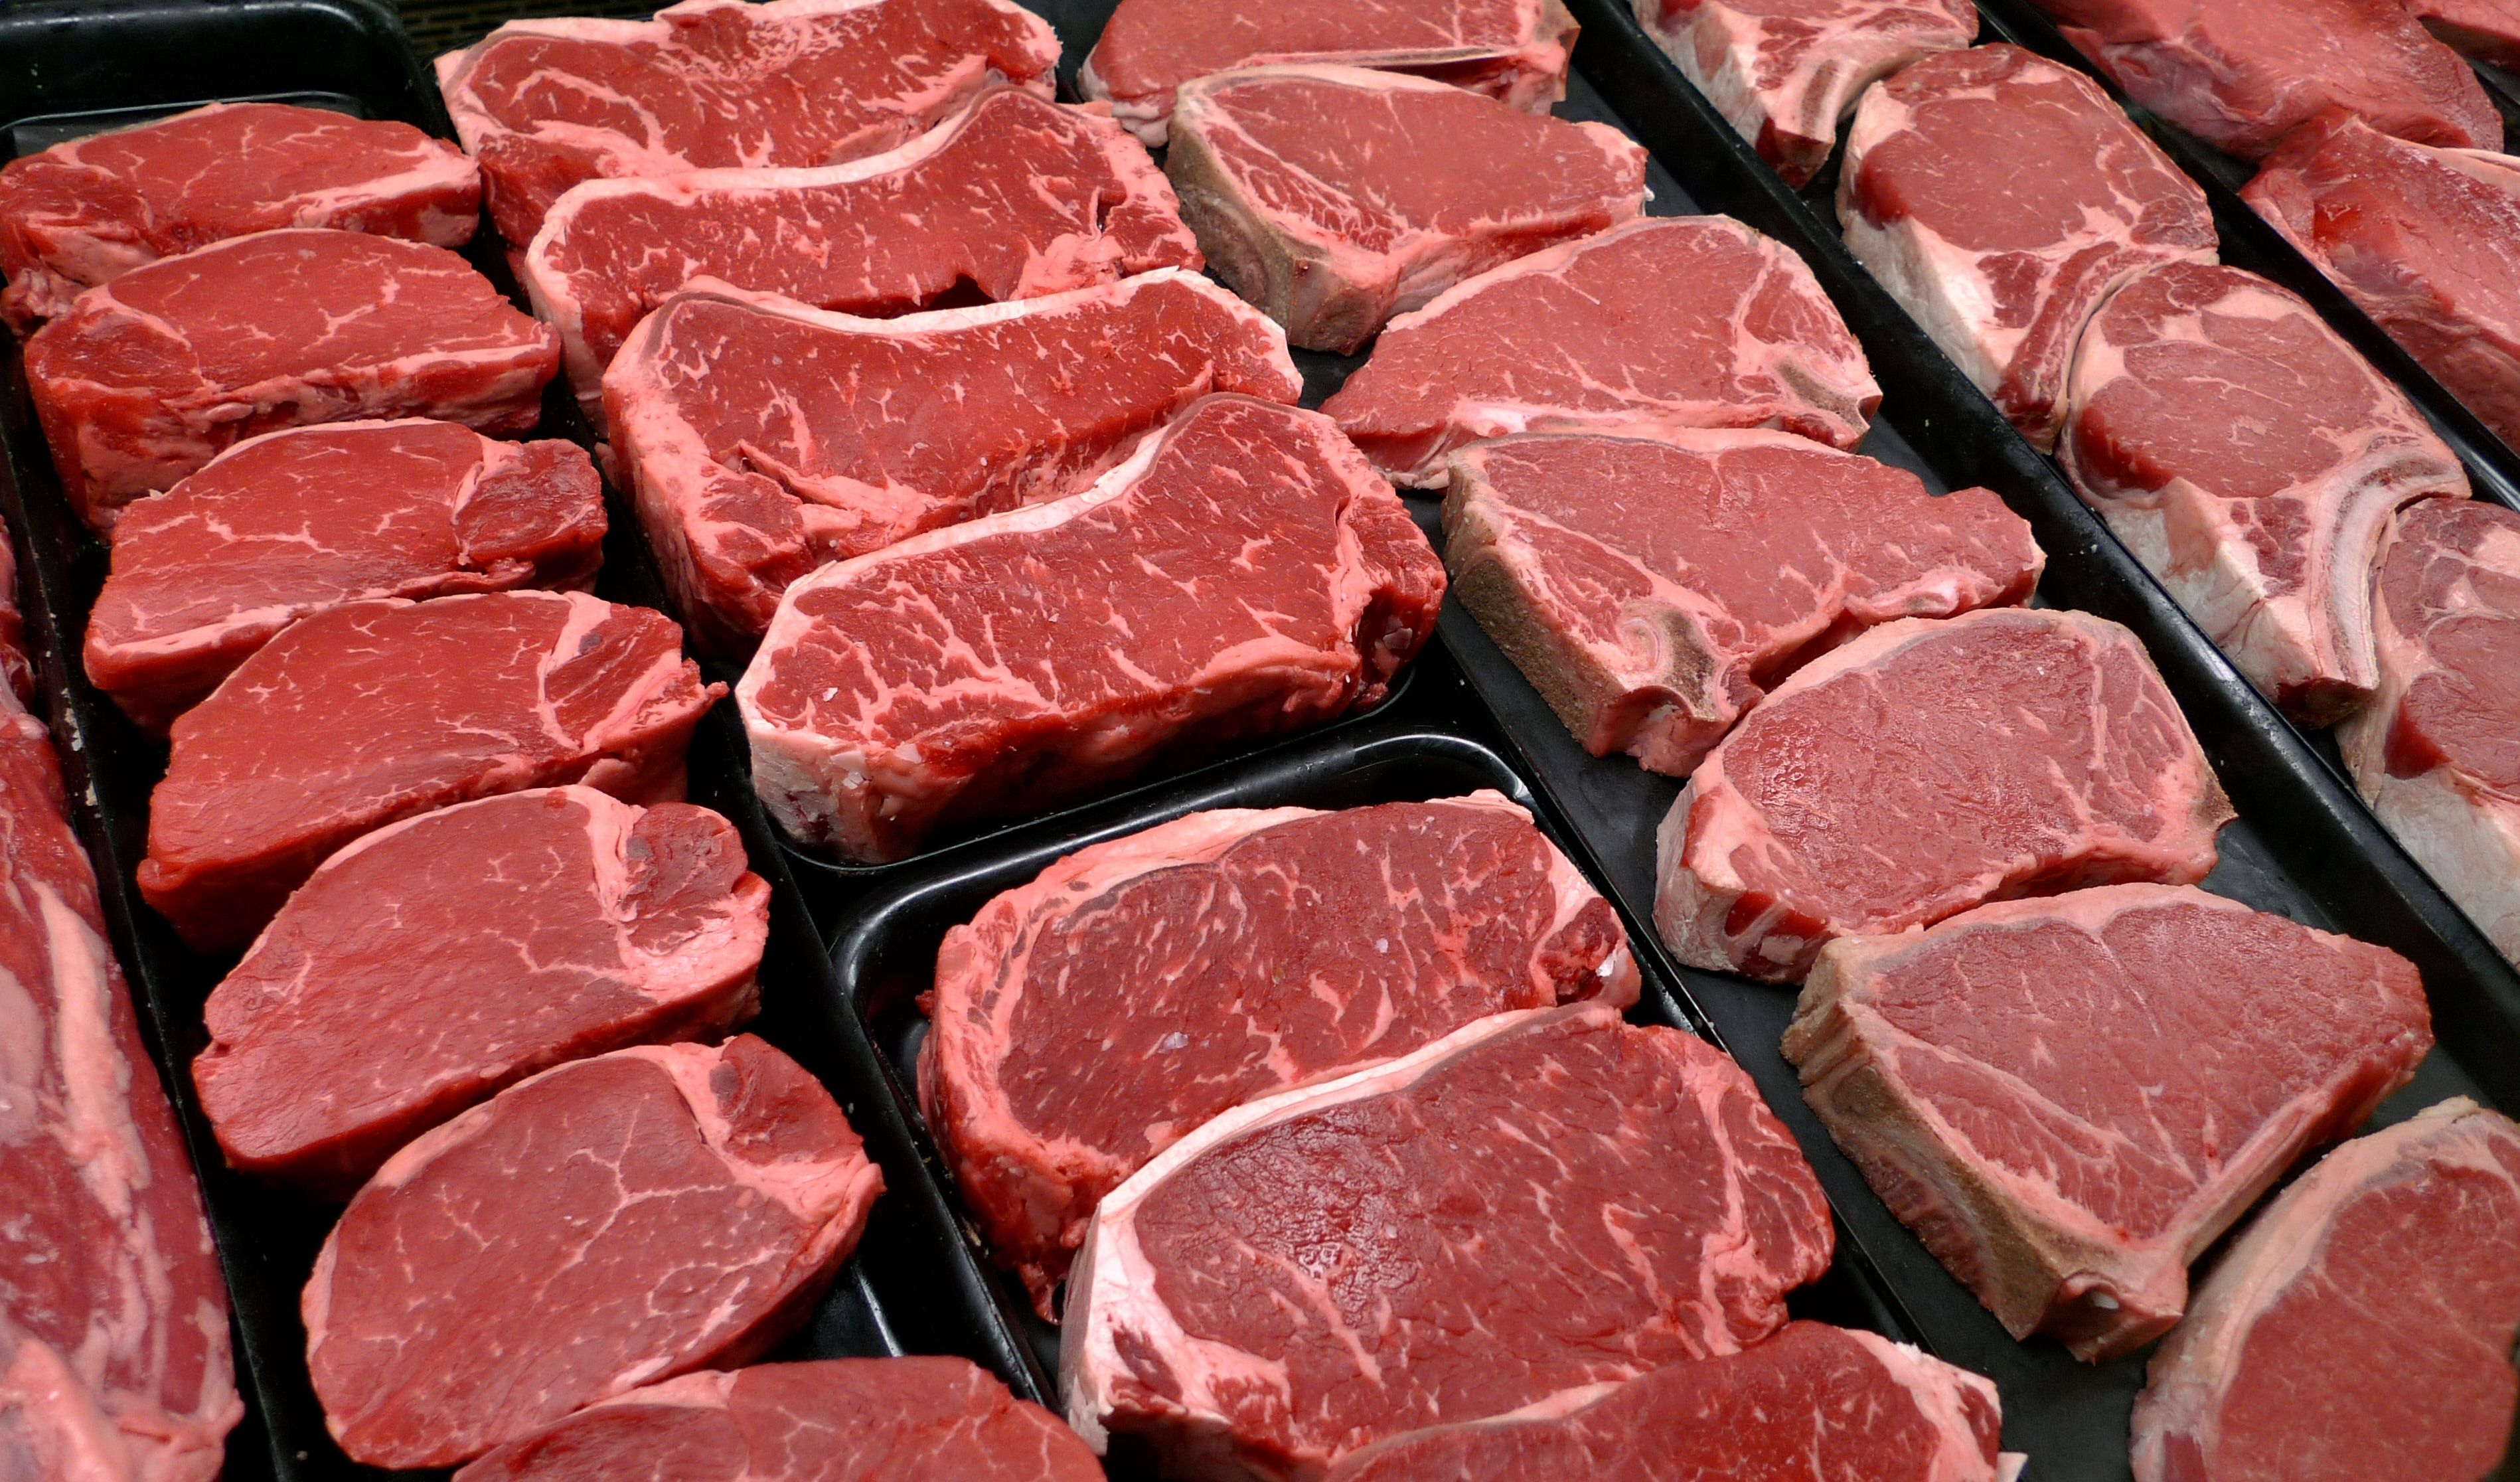 Eat Less Meat A Government Panel Says Is Science On Their Side Meat Causes Cancer Beef Stop Eating